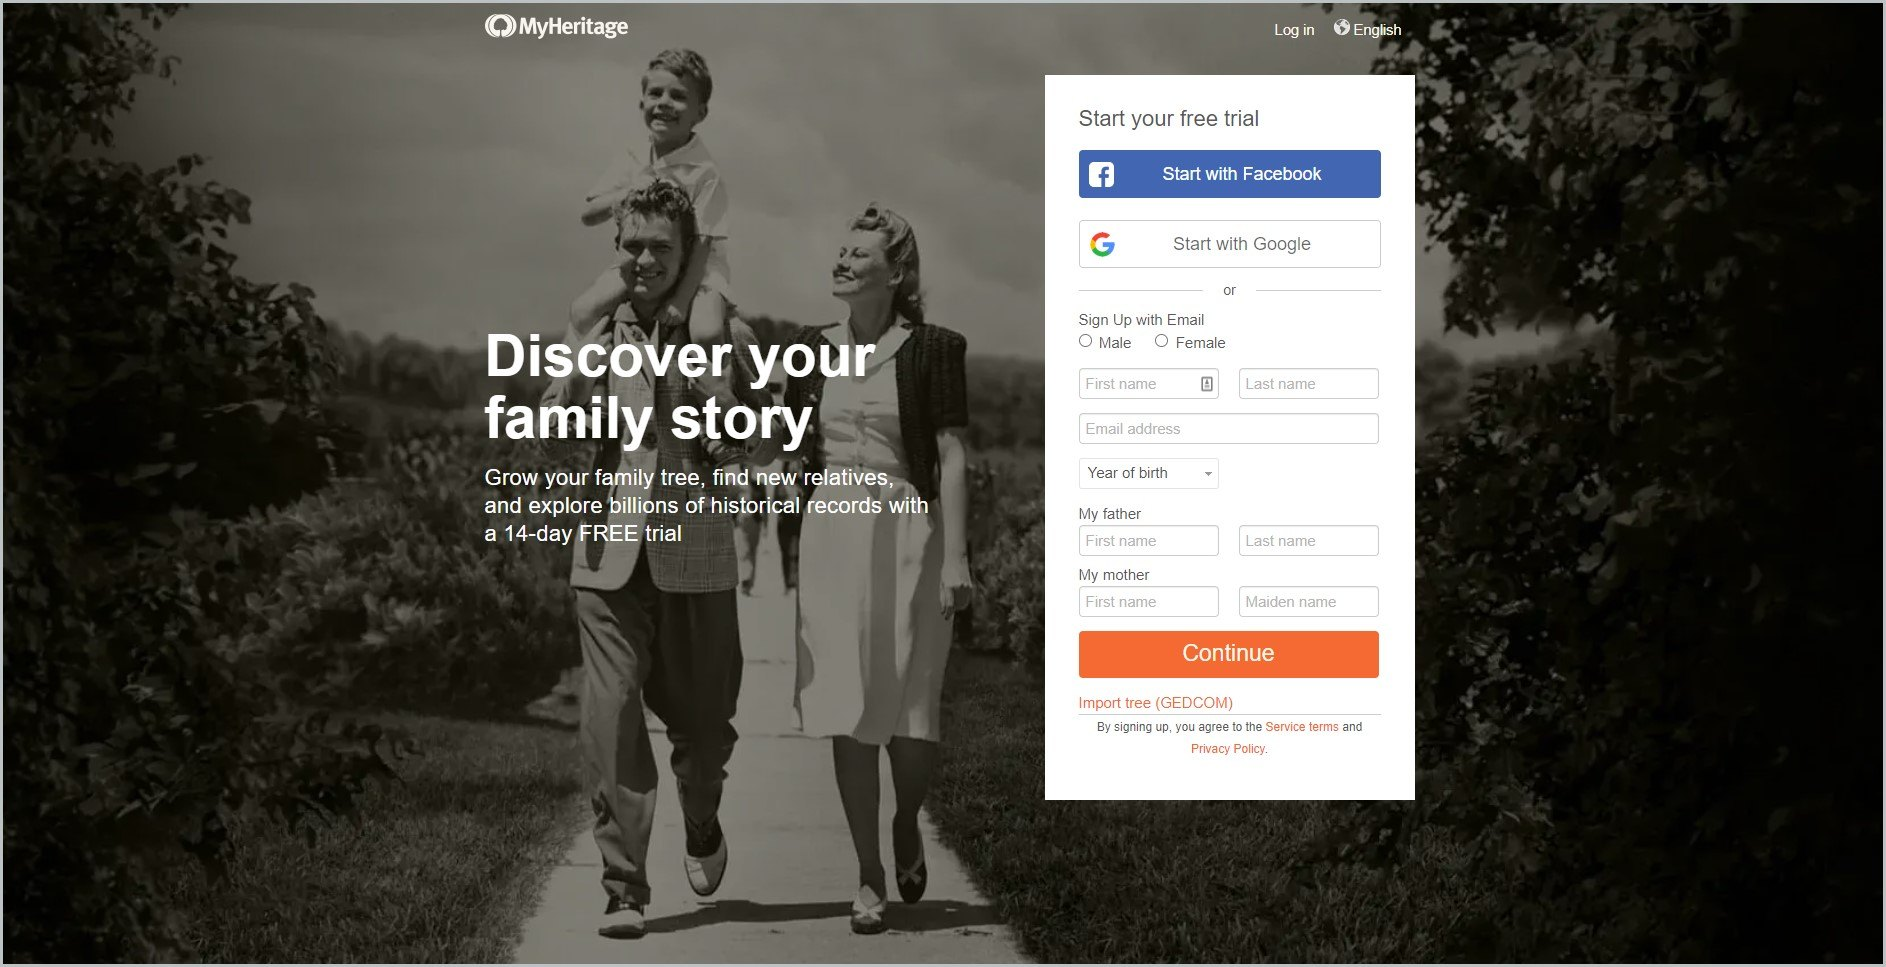 screenshot of MyHeritage homepage, showing the website's name and a signup area for their 14-day free trial offer, it also showcases a vintage family photo as background